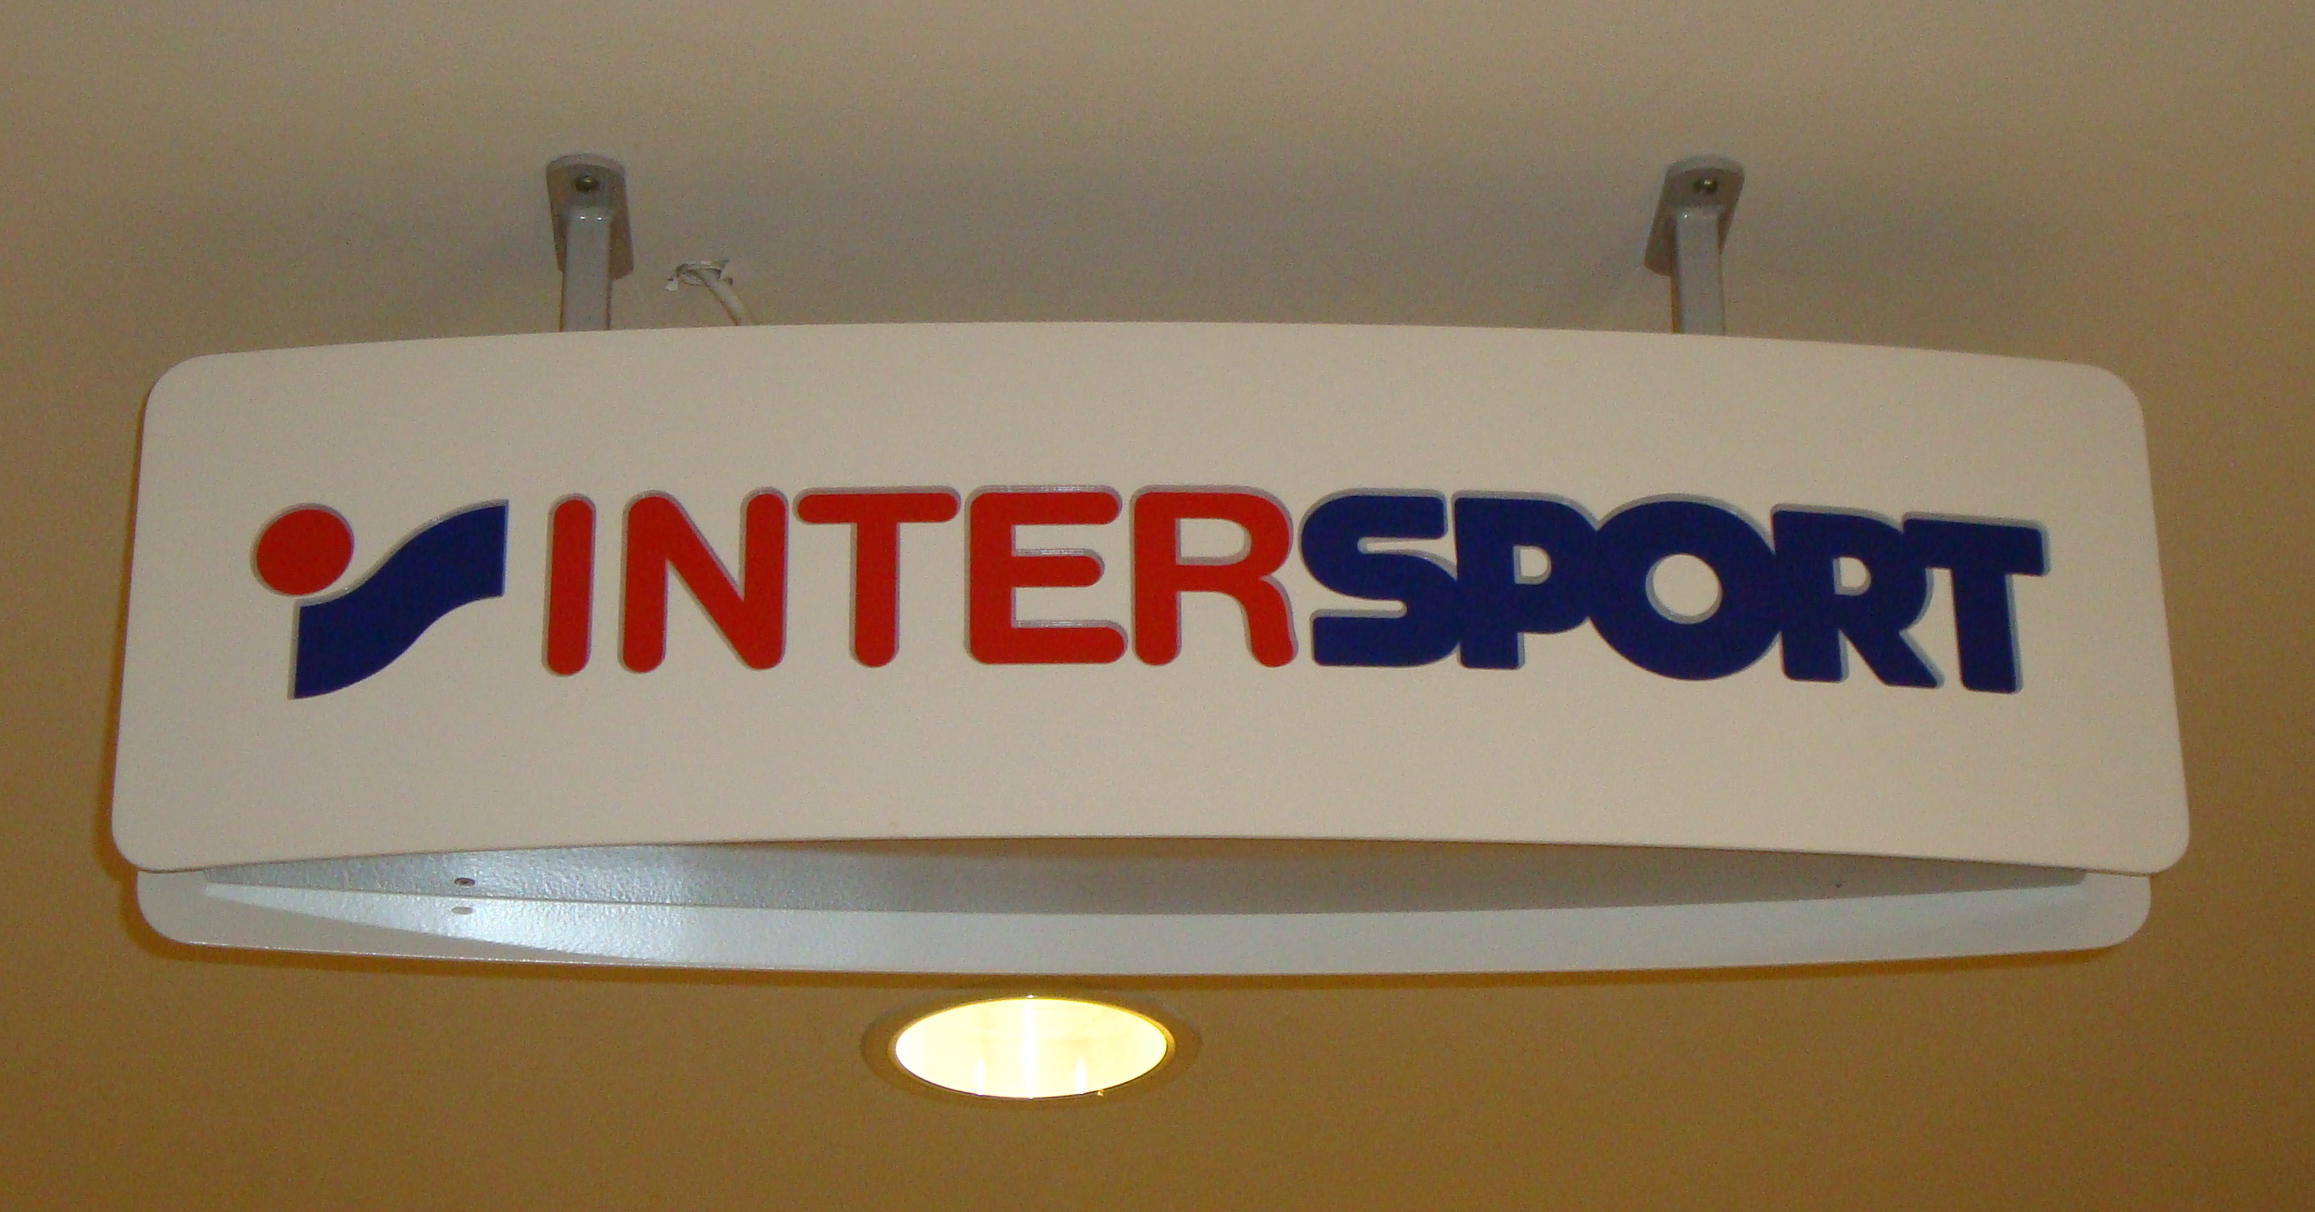 4c0e47579d7 Intersport – Wikipedia